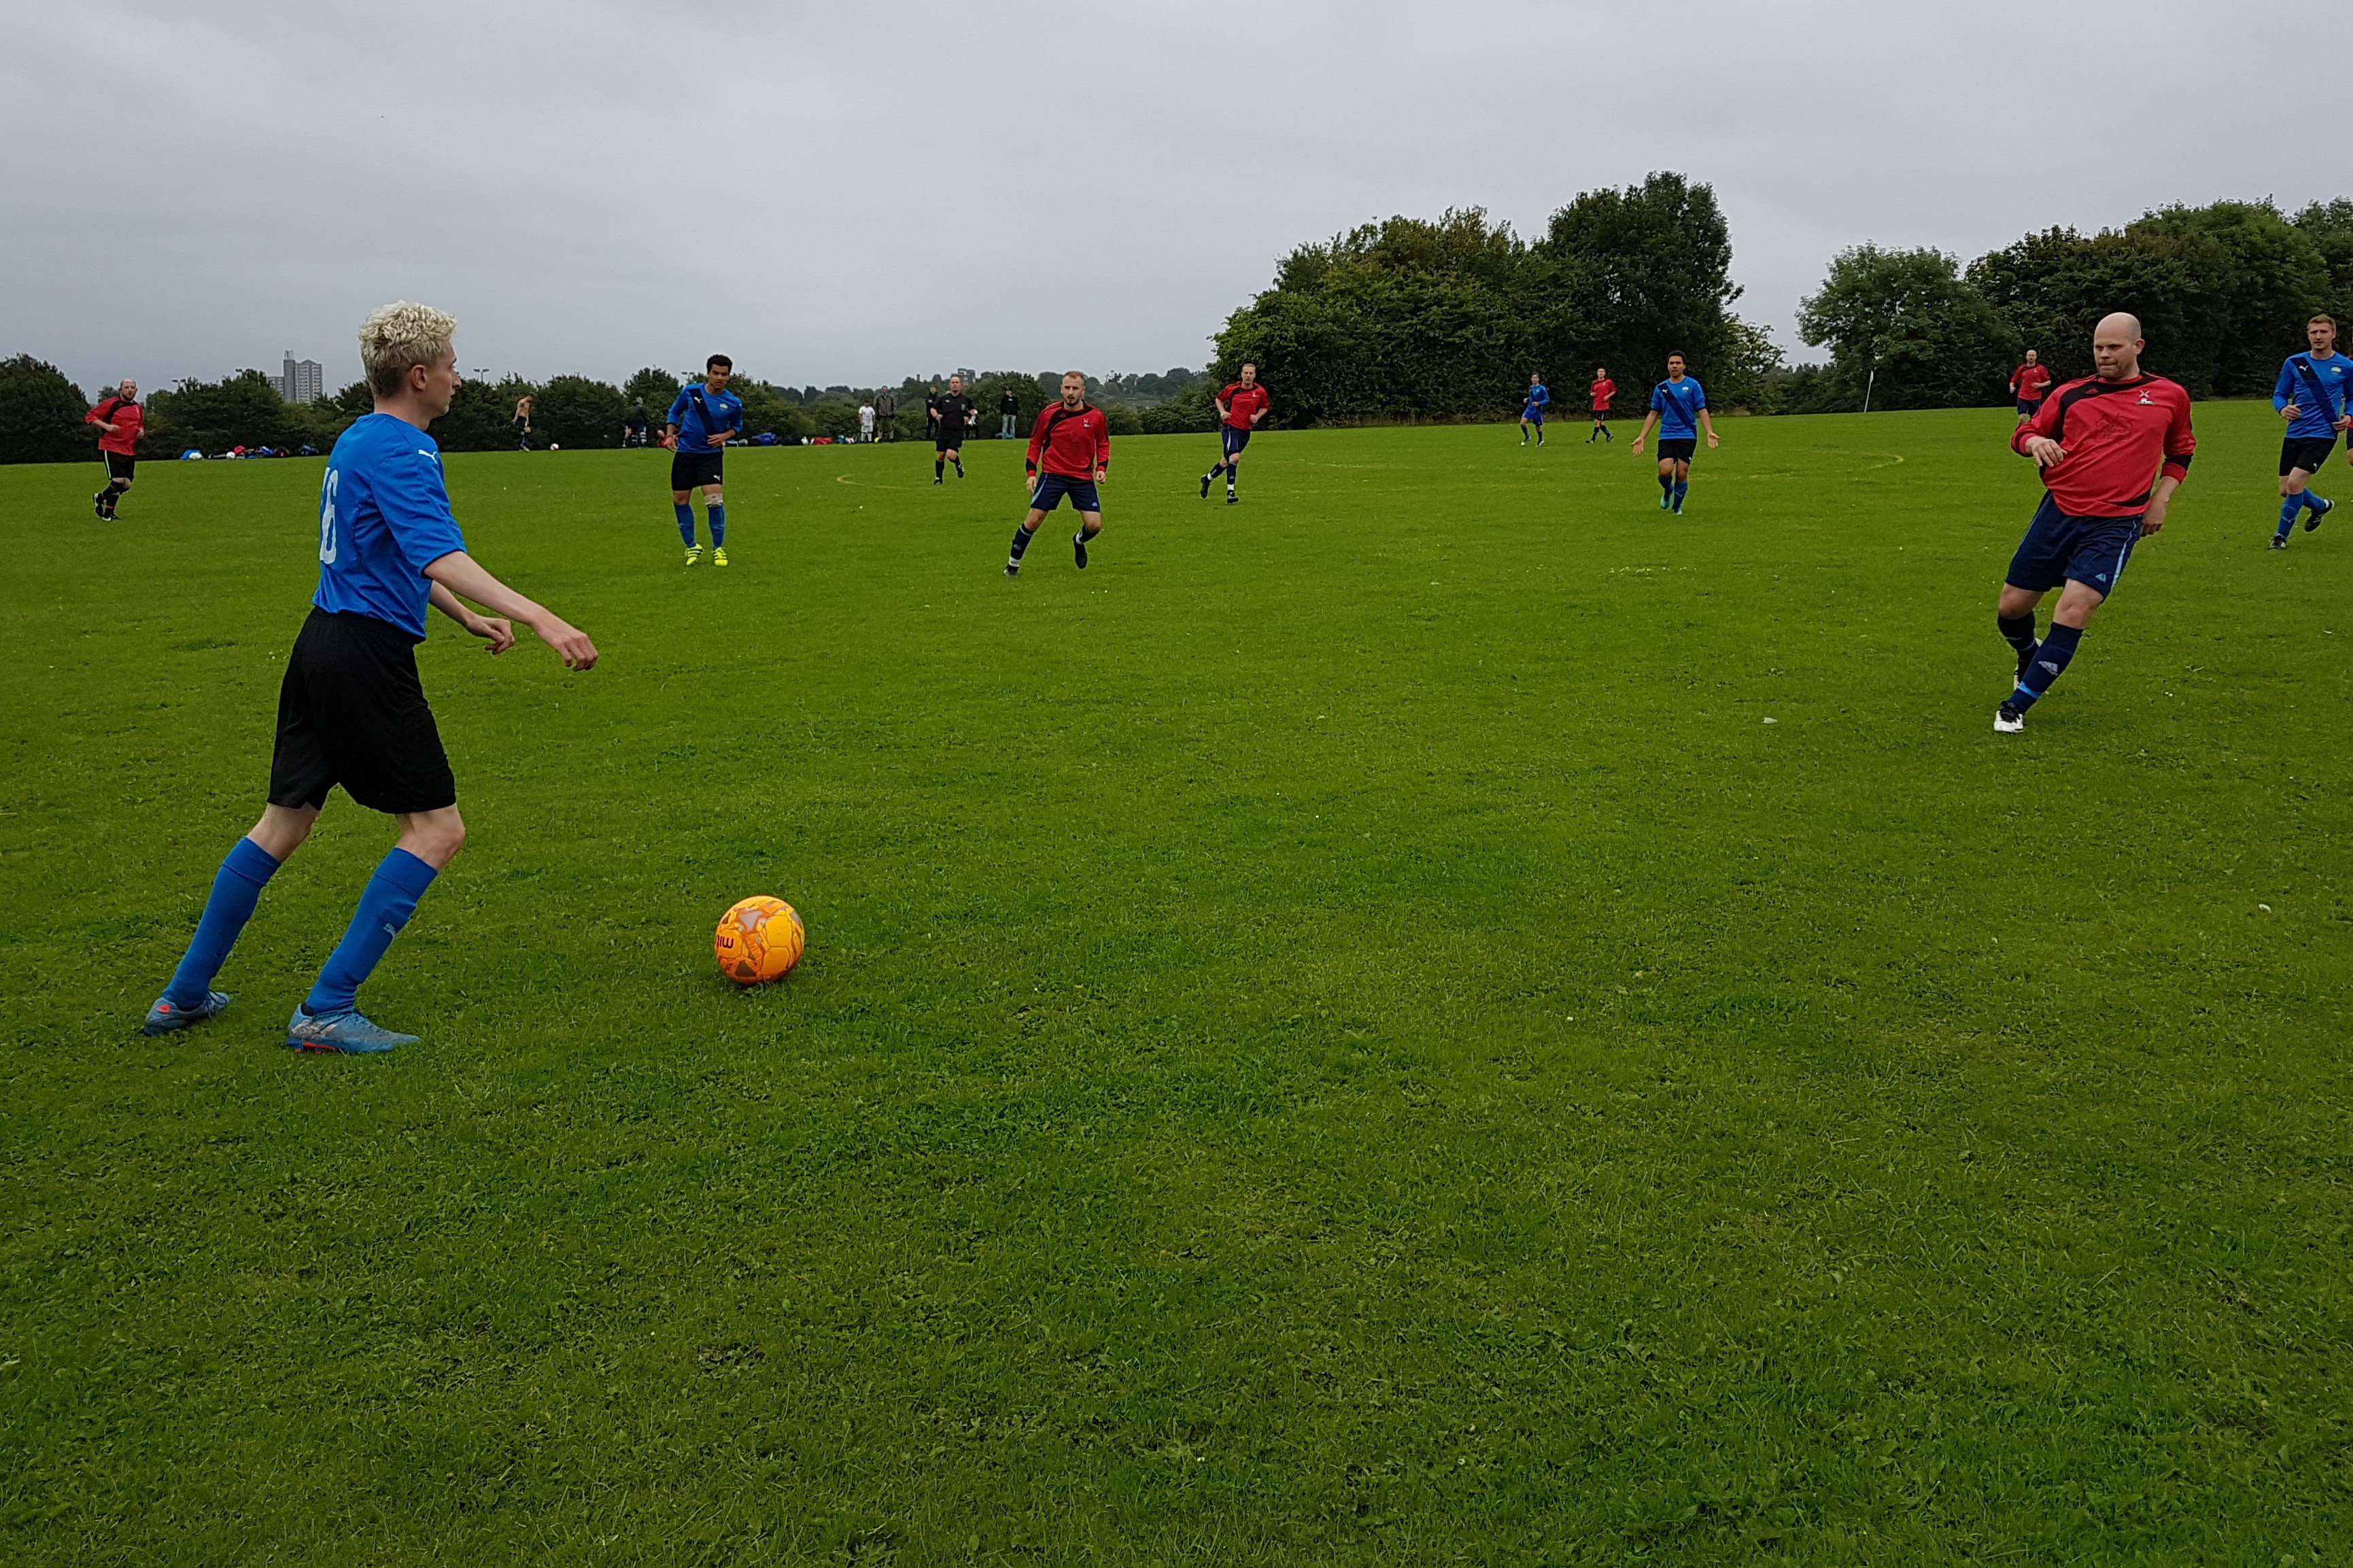 Sutton Bonington FC playing against Woodhouse Imperial FC